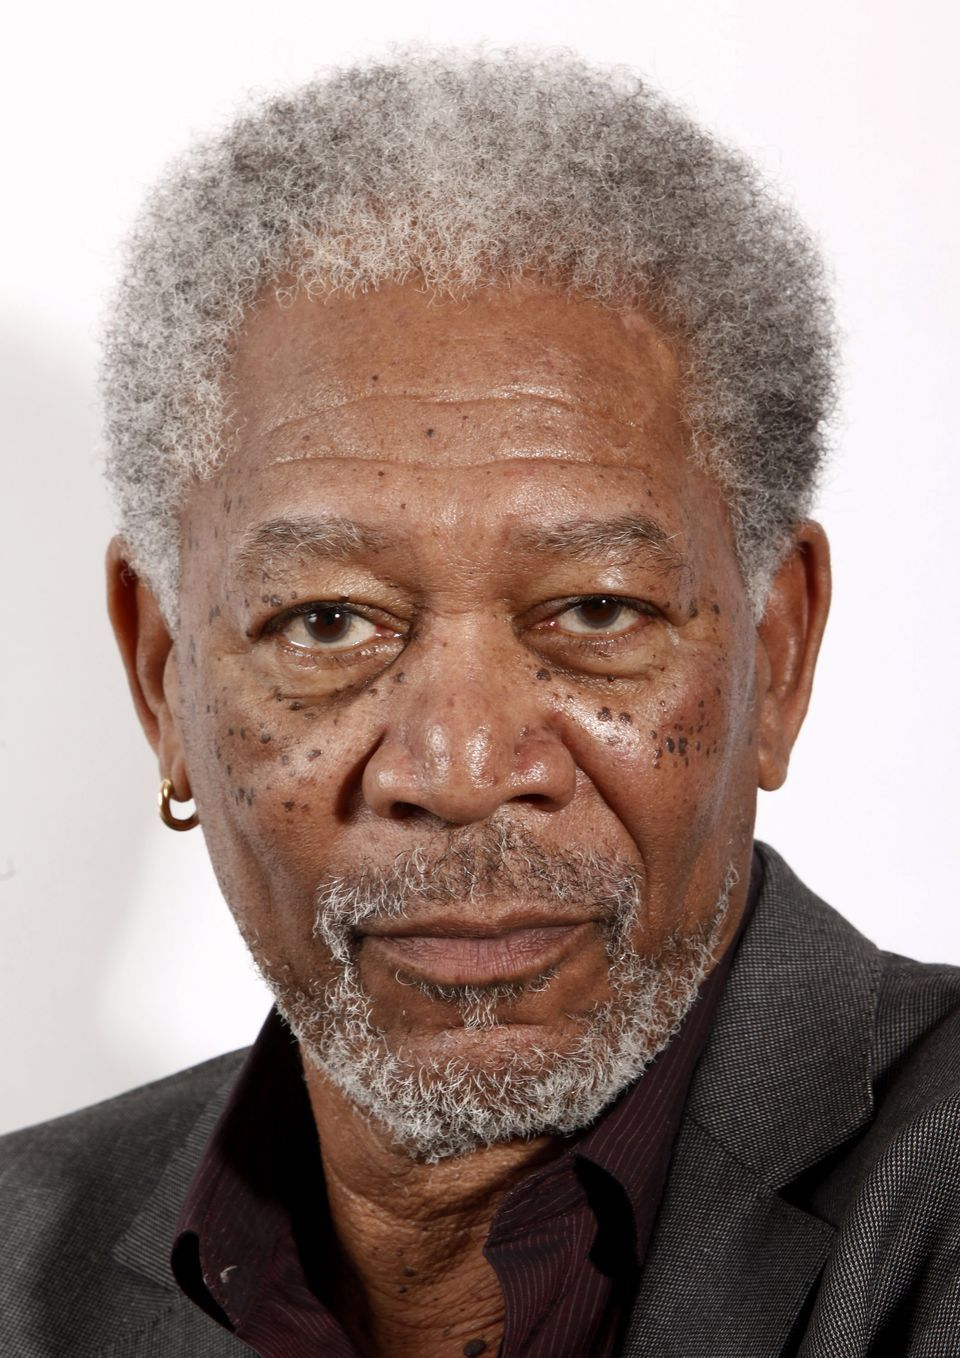 morgan freeman - Google Search | N a i ' z y y -- M a l e ...